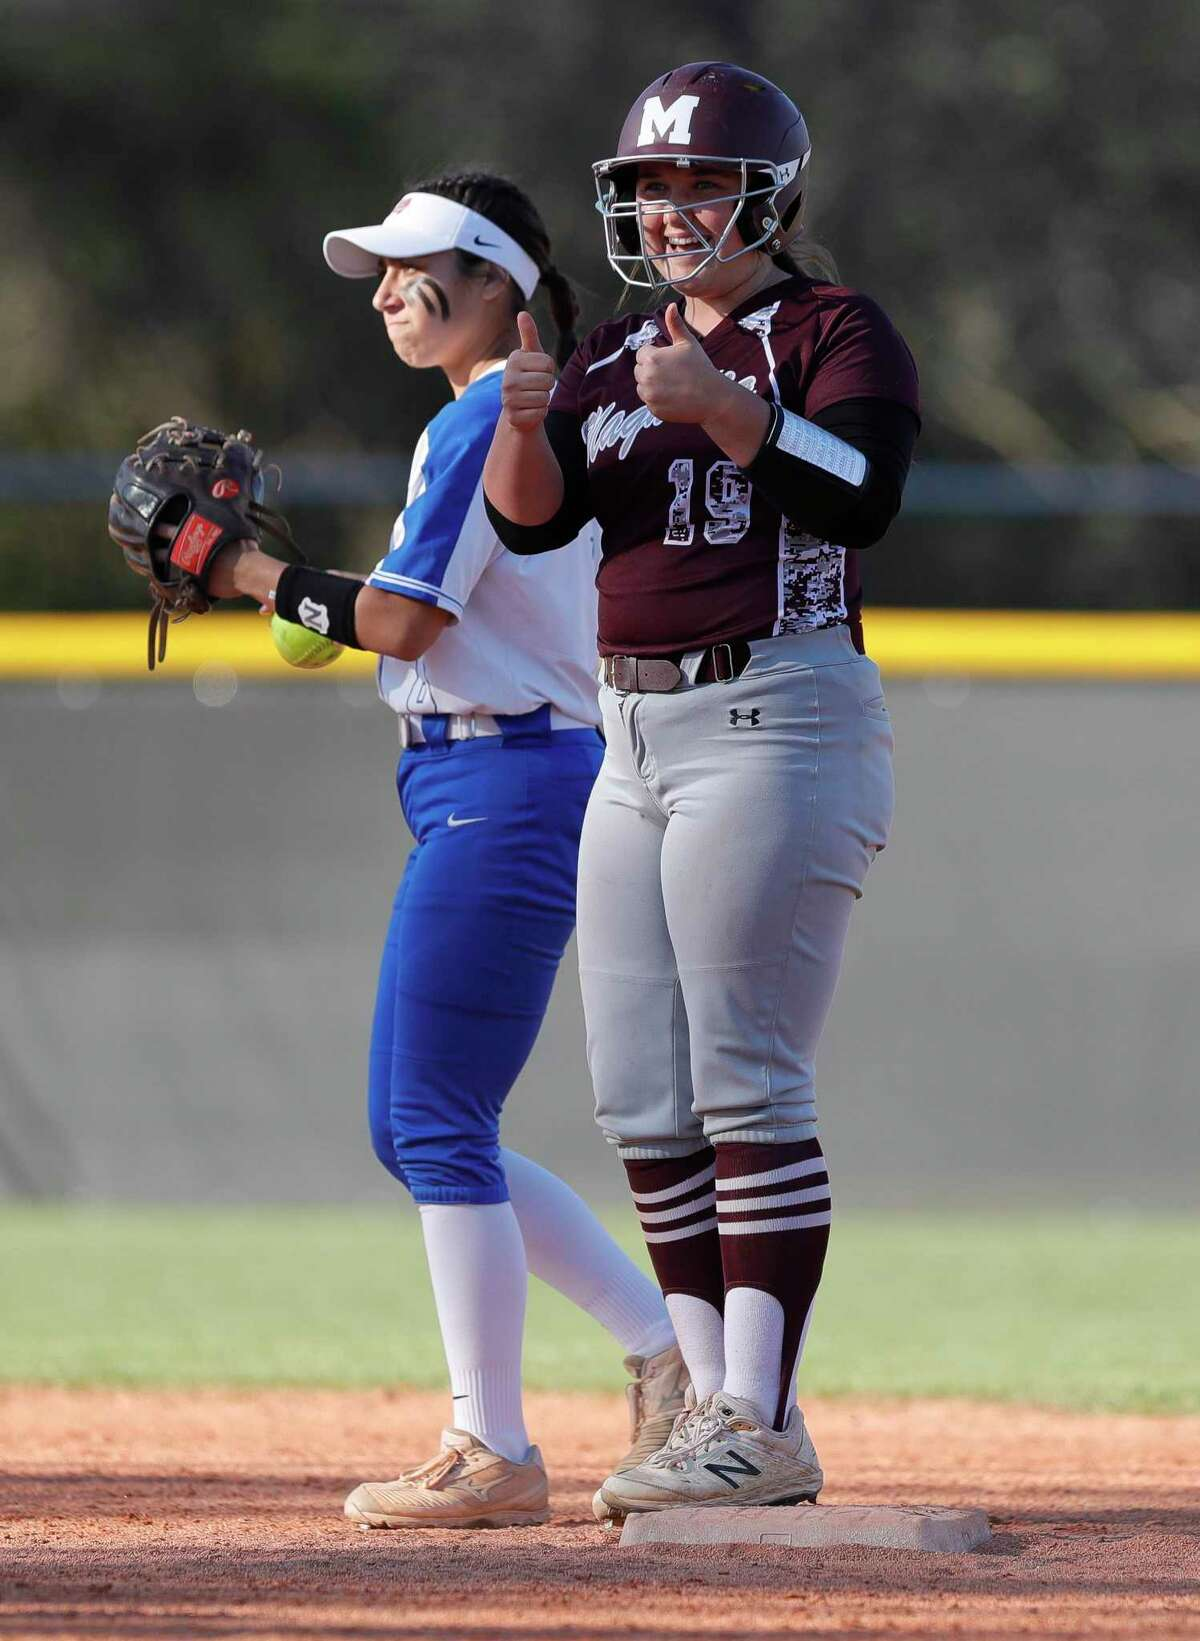 Caitlyn Stevens #19 of Magnolia gives a thumbs-up after hitting an double during the fourth inning of a non-district high school softball game at Oak Ridge High School, Thursday, Feb. 27, 2020, in Oak Ridge.